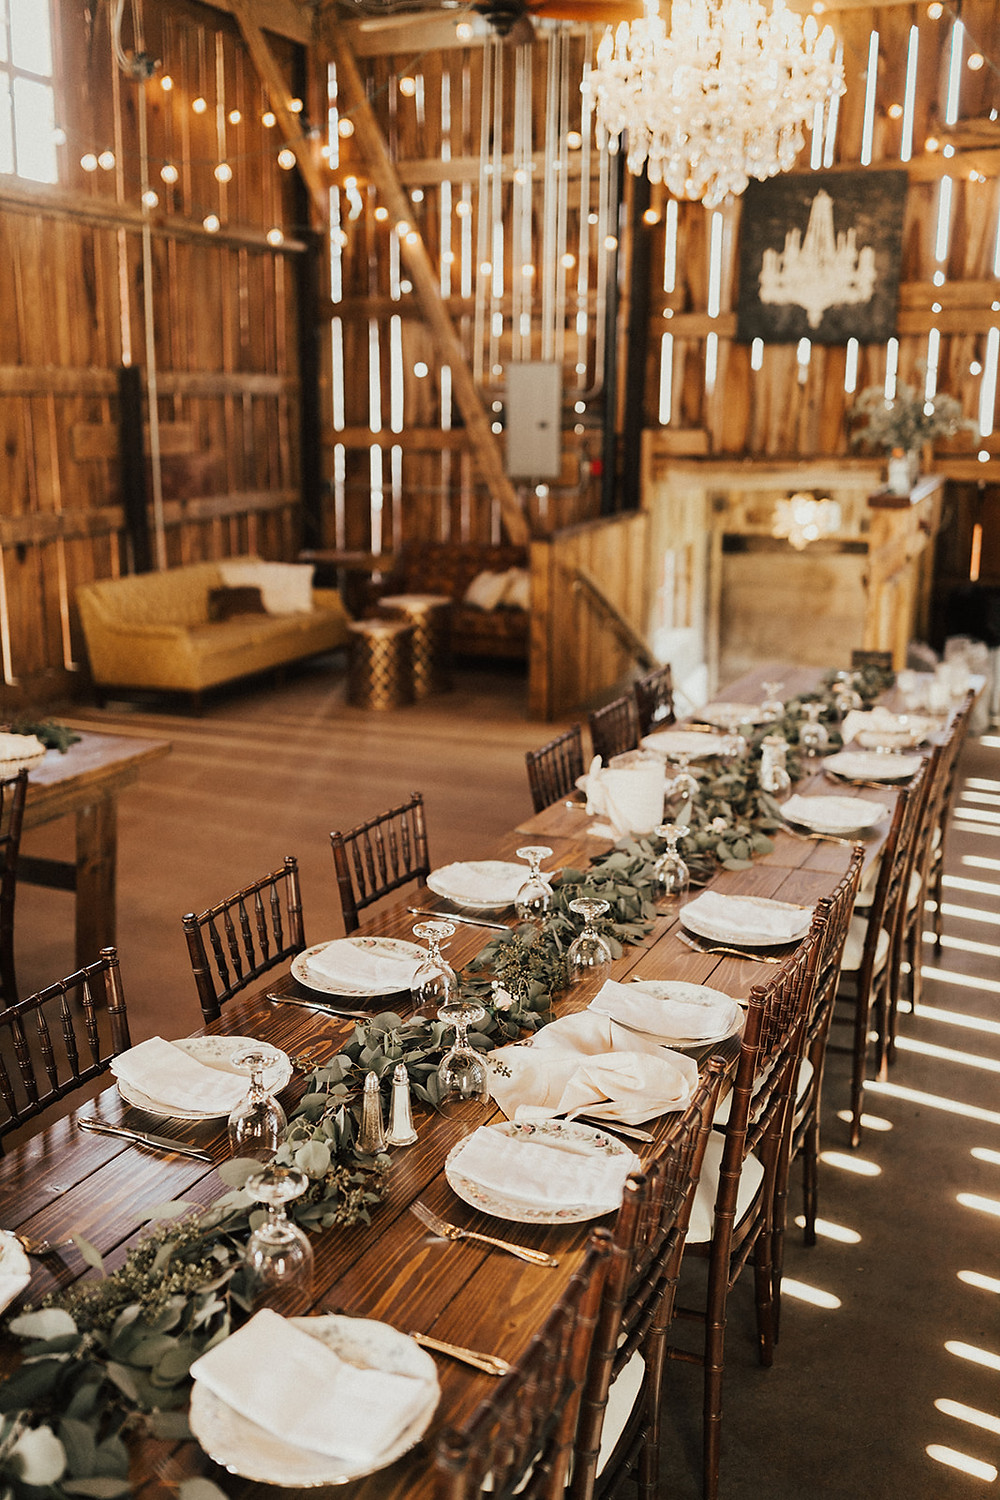 Rustic Farm Table Wedding Table Decor: Charming Bohemian Gilbertsville Farmhouse Wedding captured by Rachel Liz Photography featured on Pretty Little Vintage Co